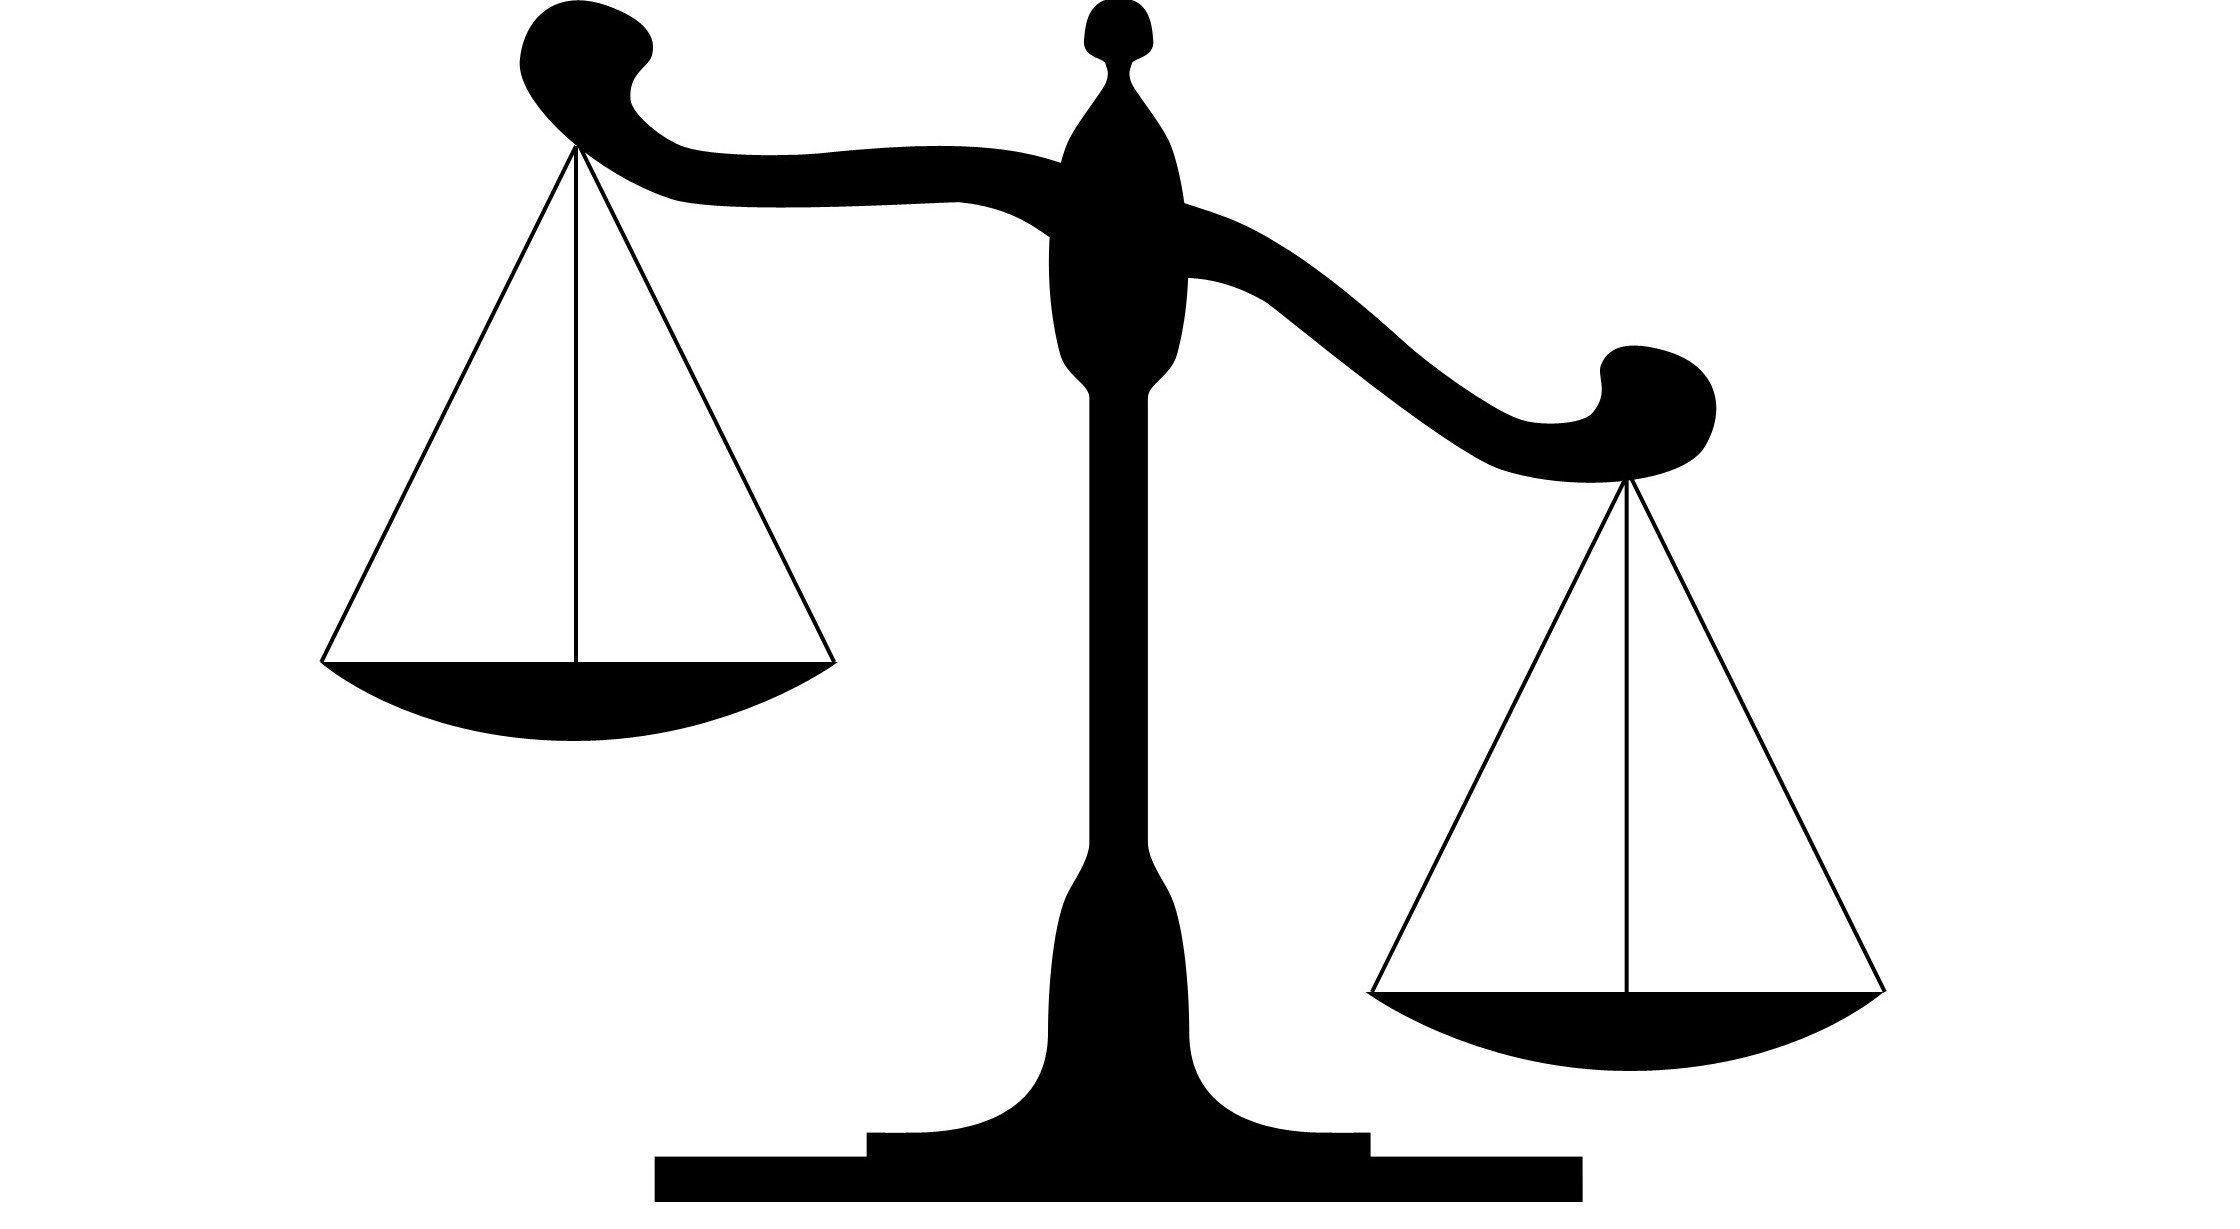 Balance clipart comparison. Weighing the advantages of